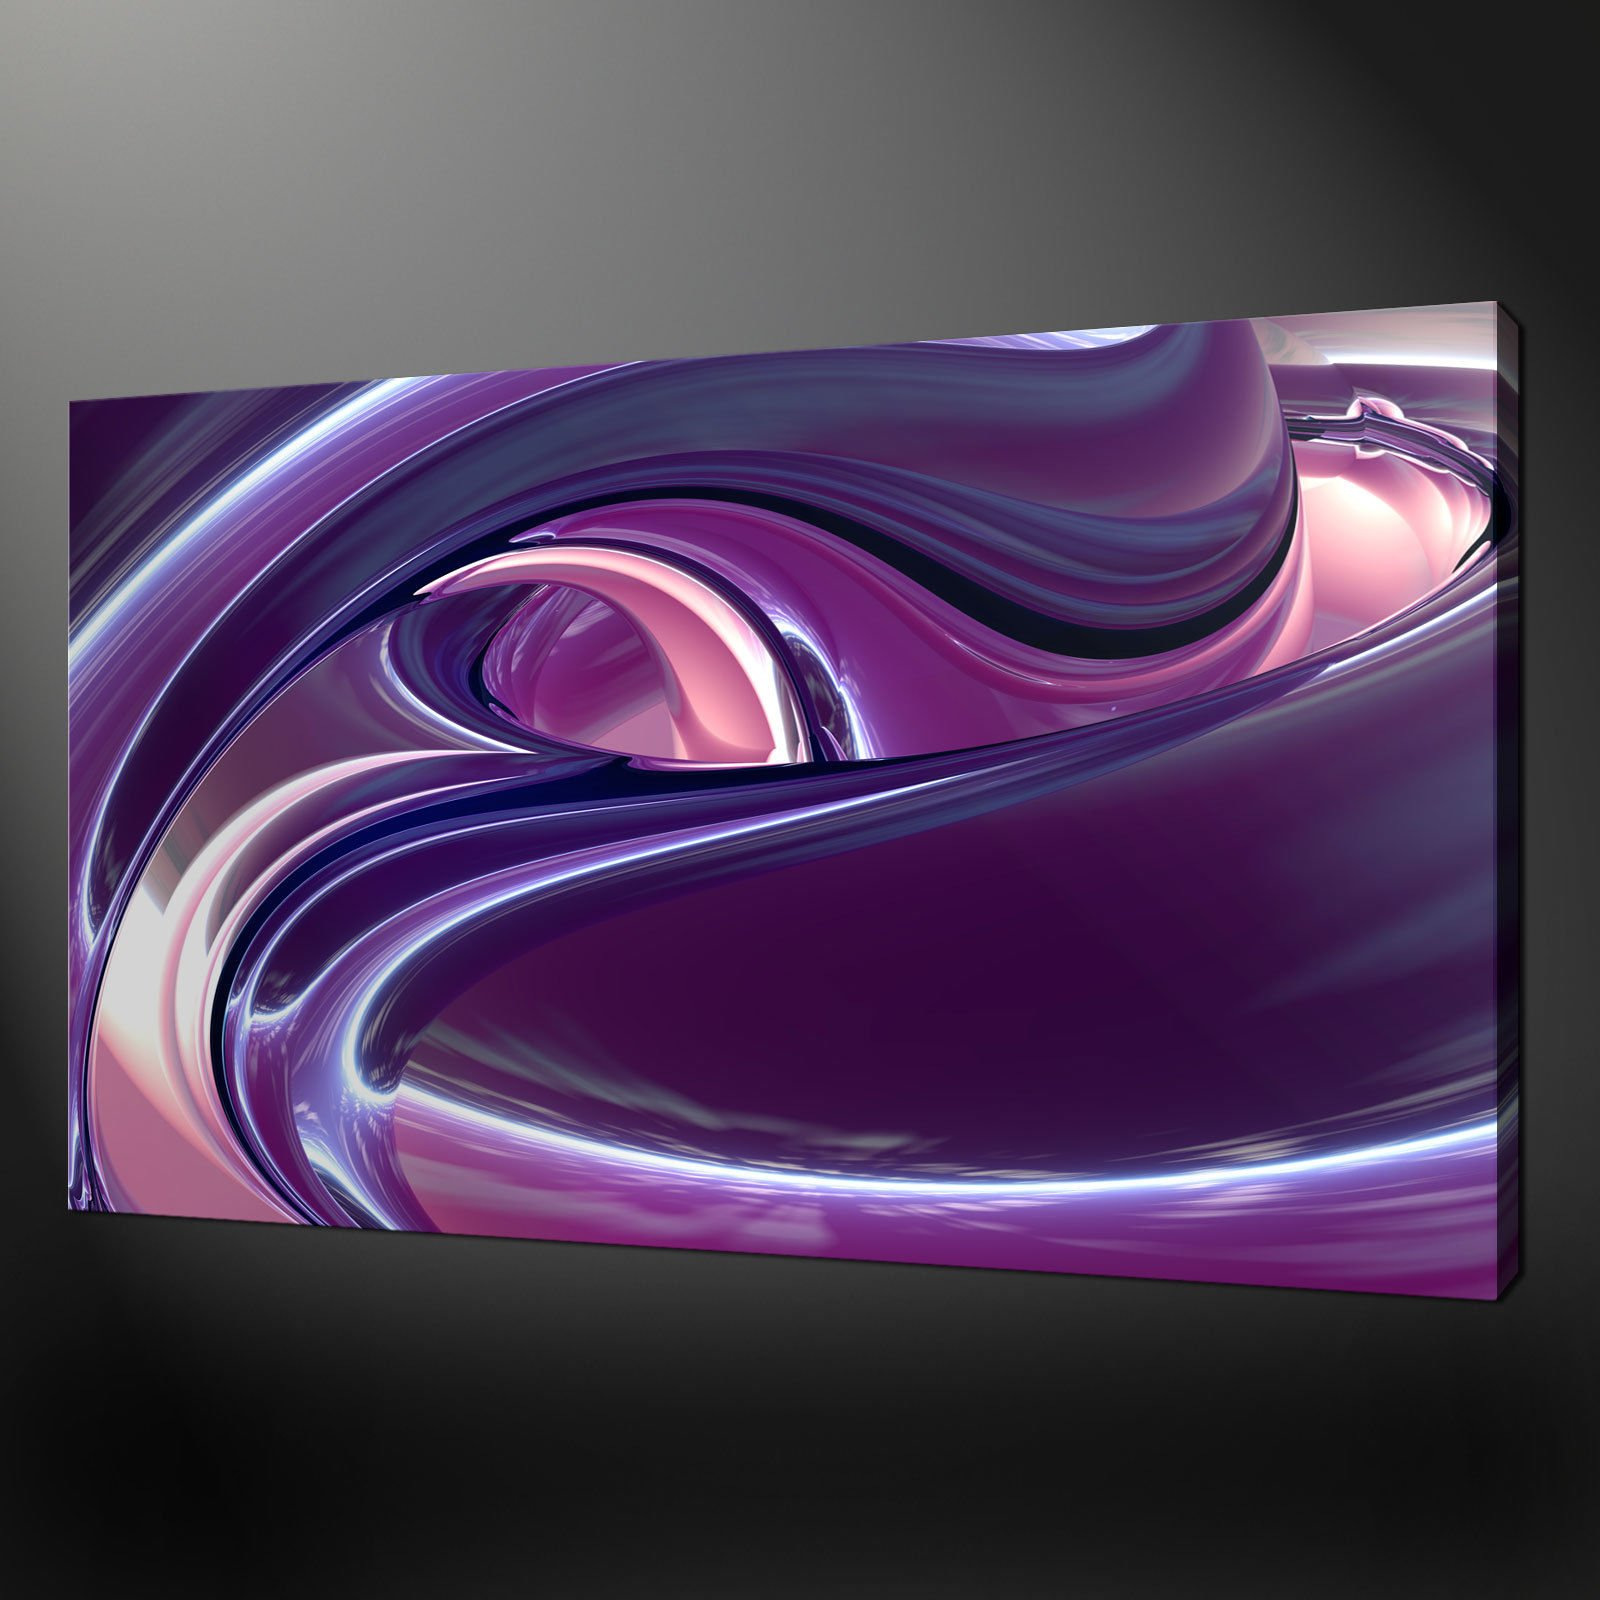 Marvelous ABSTRACT PURPLE PINK WAVES CANVAS WALL ART ...